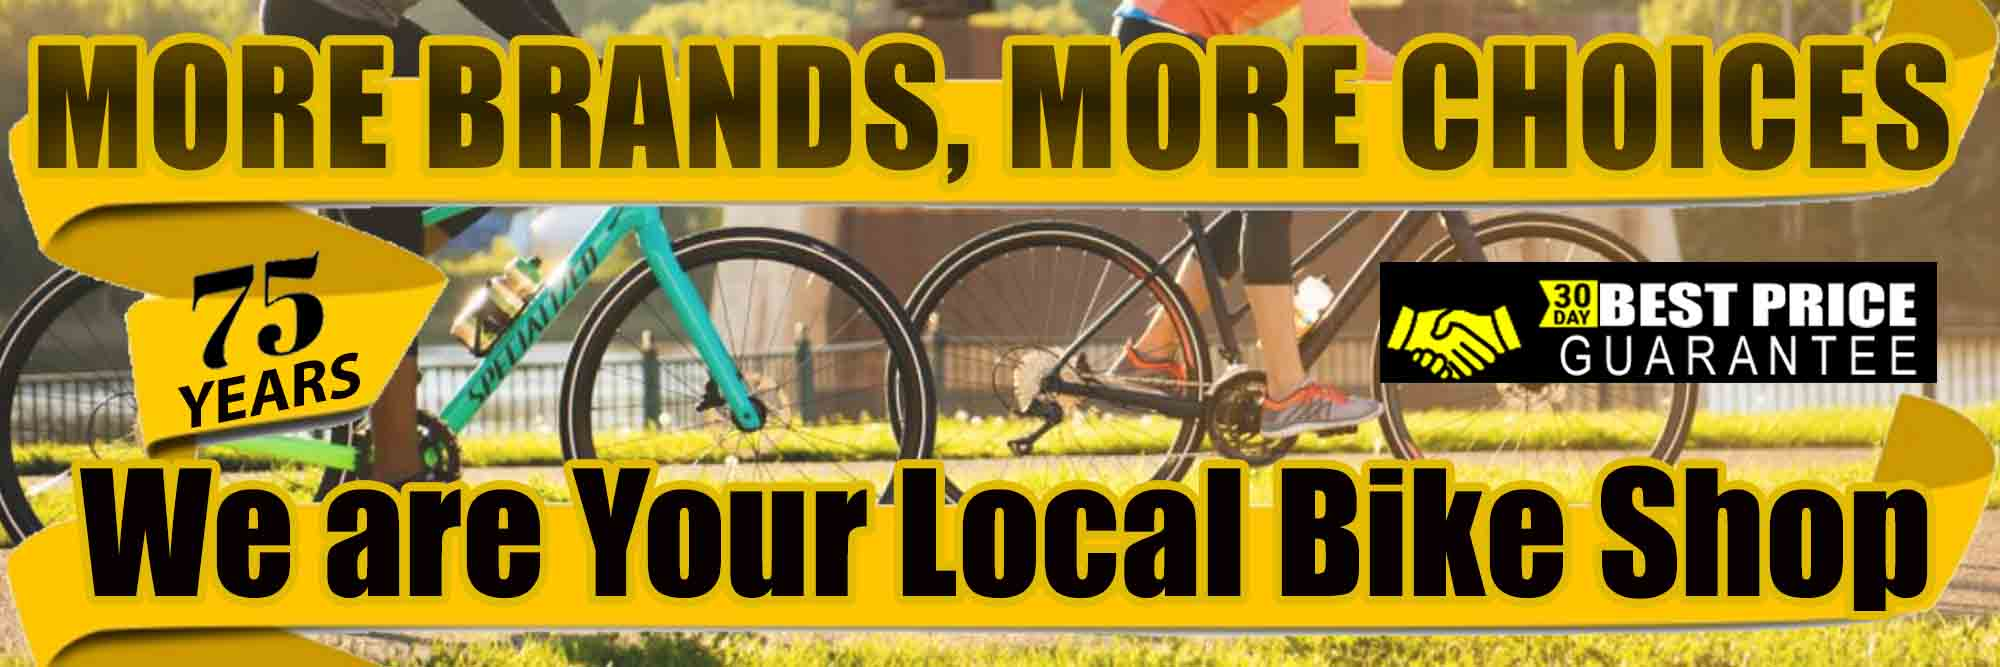 Kozy's Cyclery - More Brands, More Choices